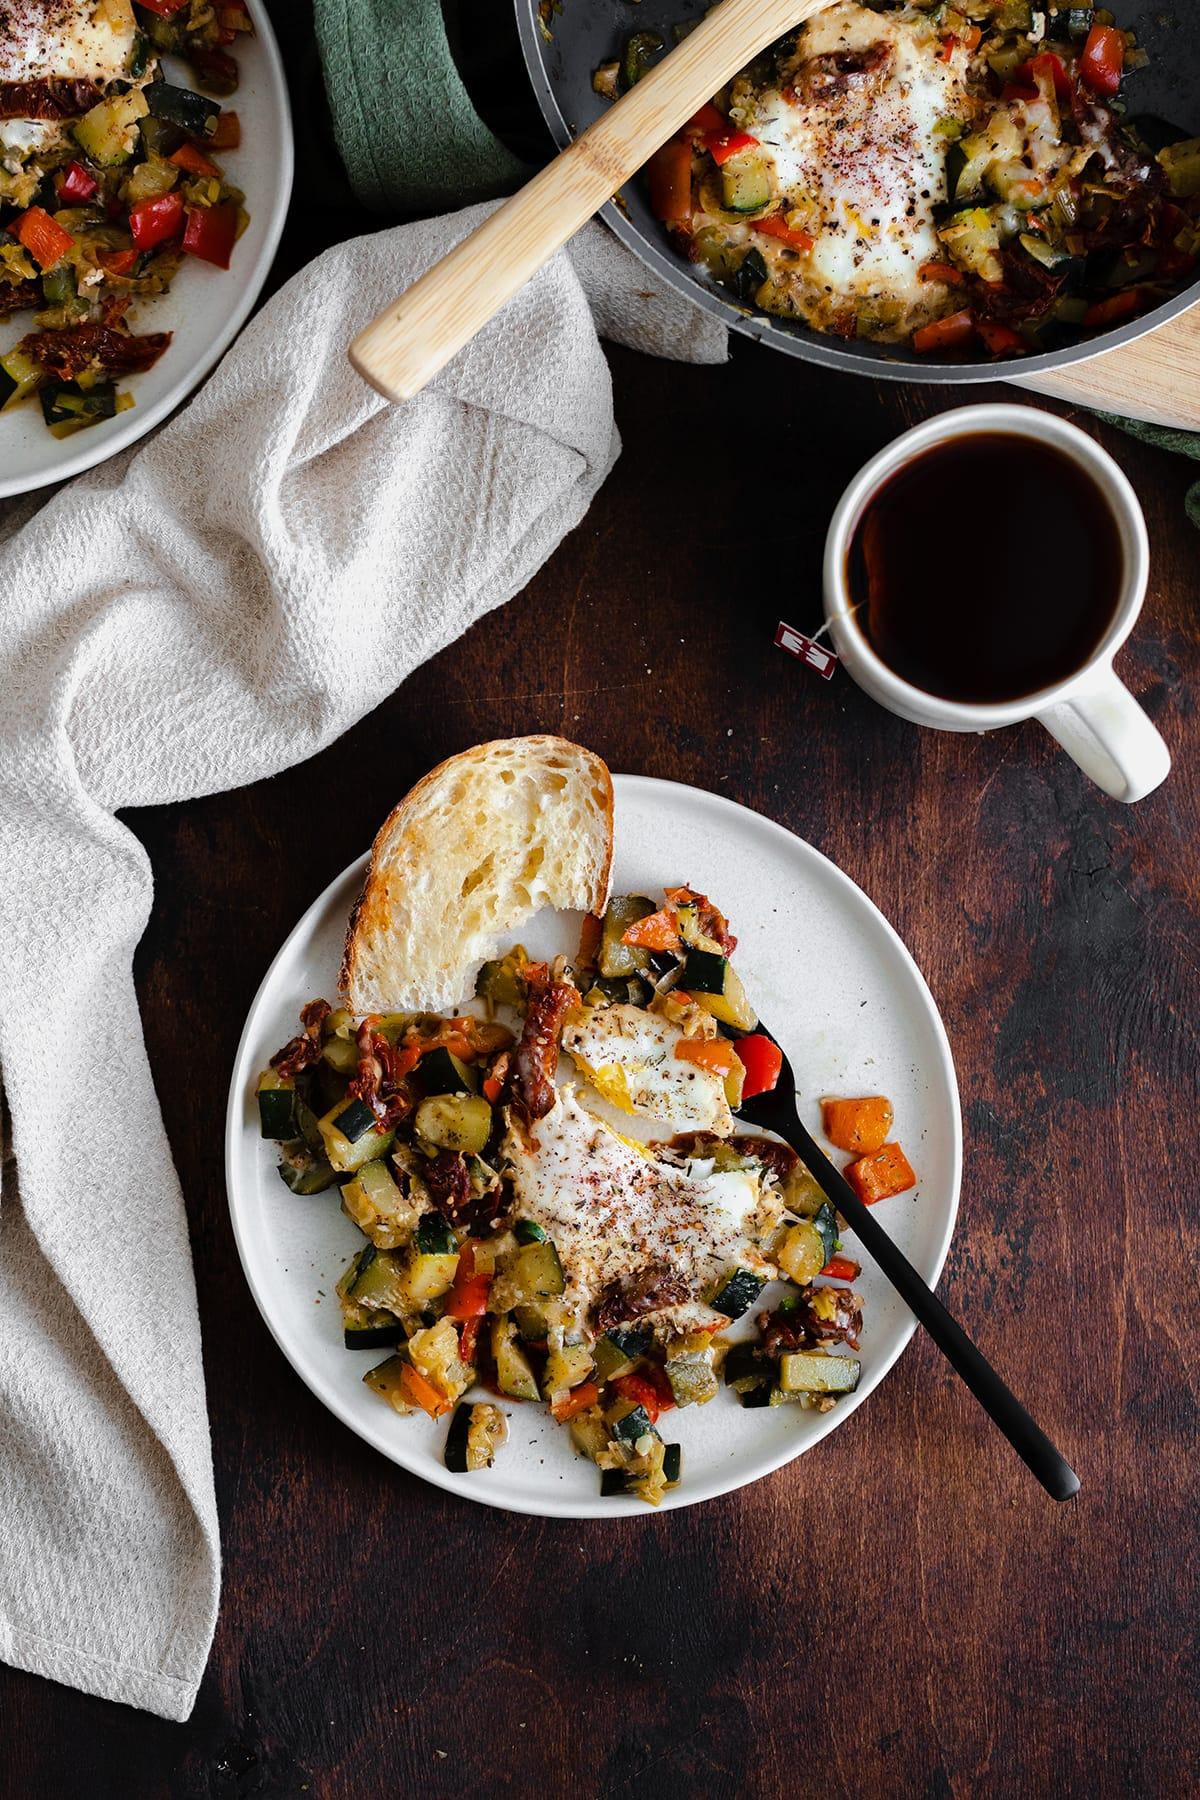 A photo of Bell Pepper and Zucchini Breakfast Skillet with Za'atar on a white plate and a wooden table